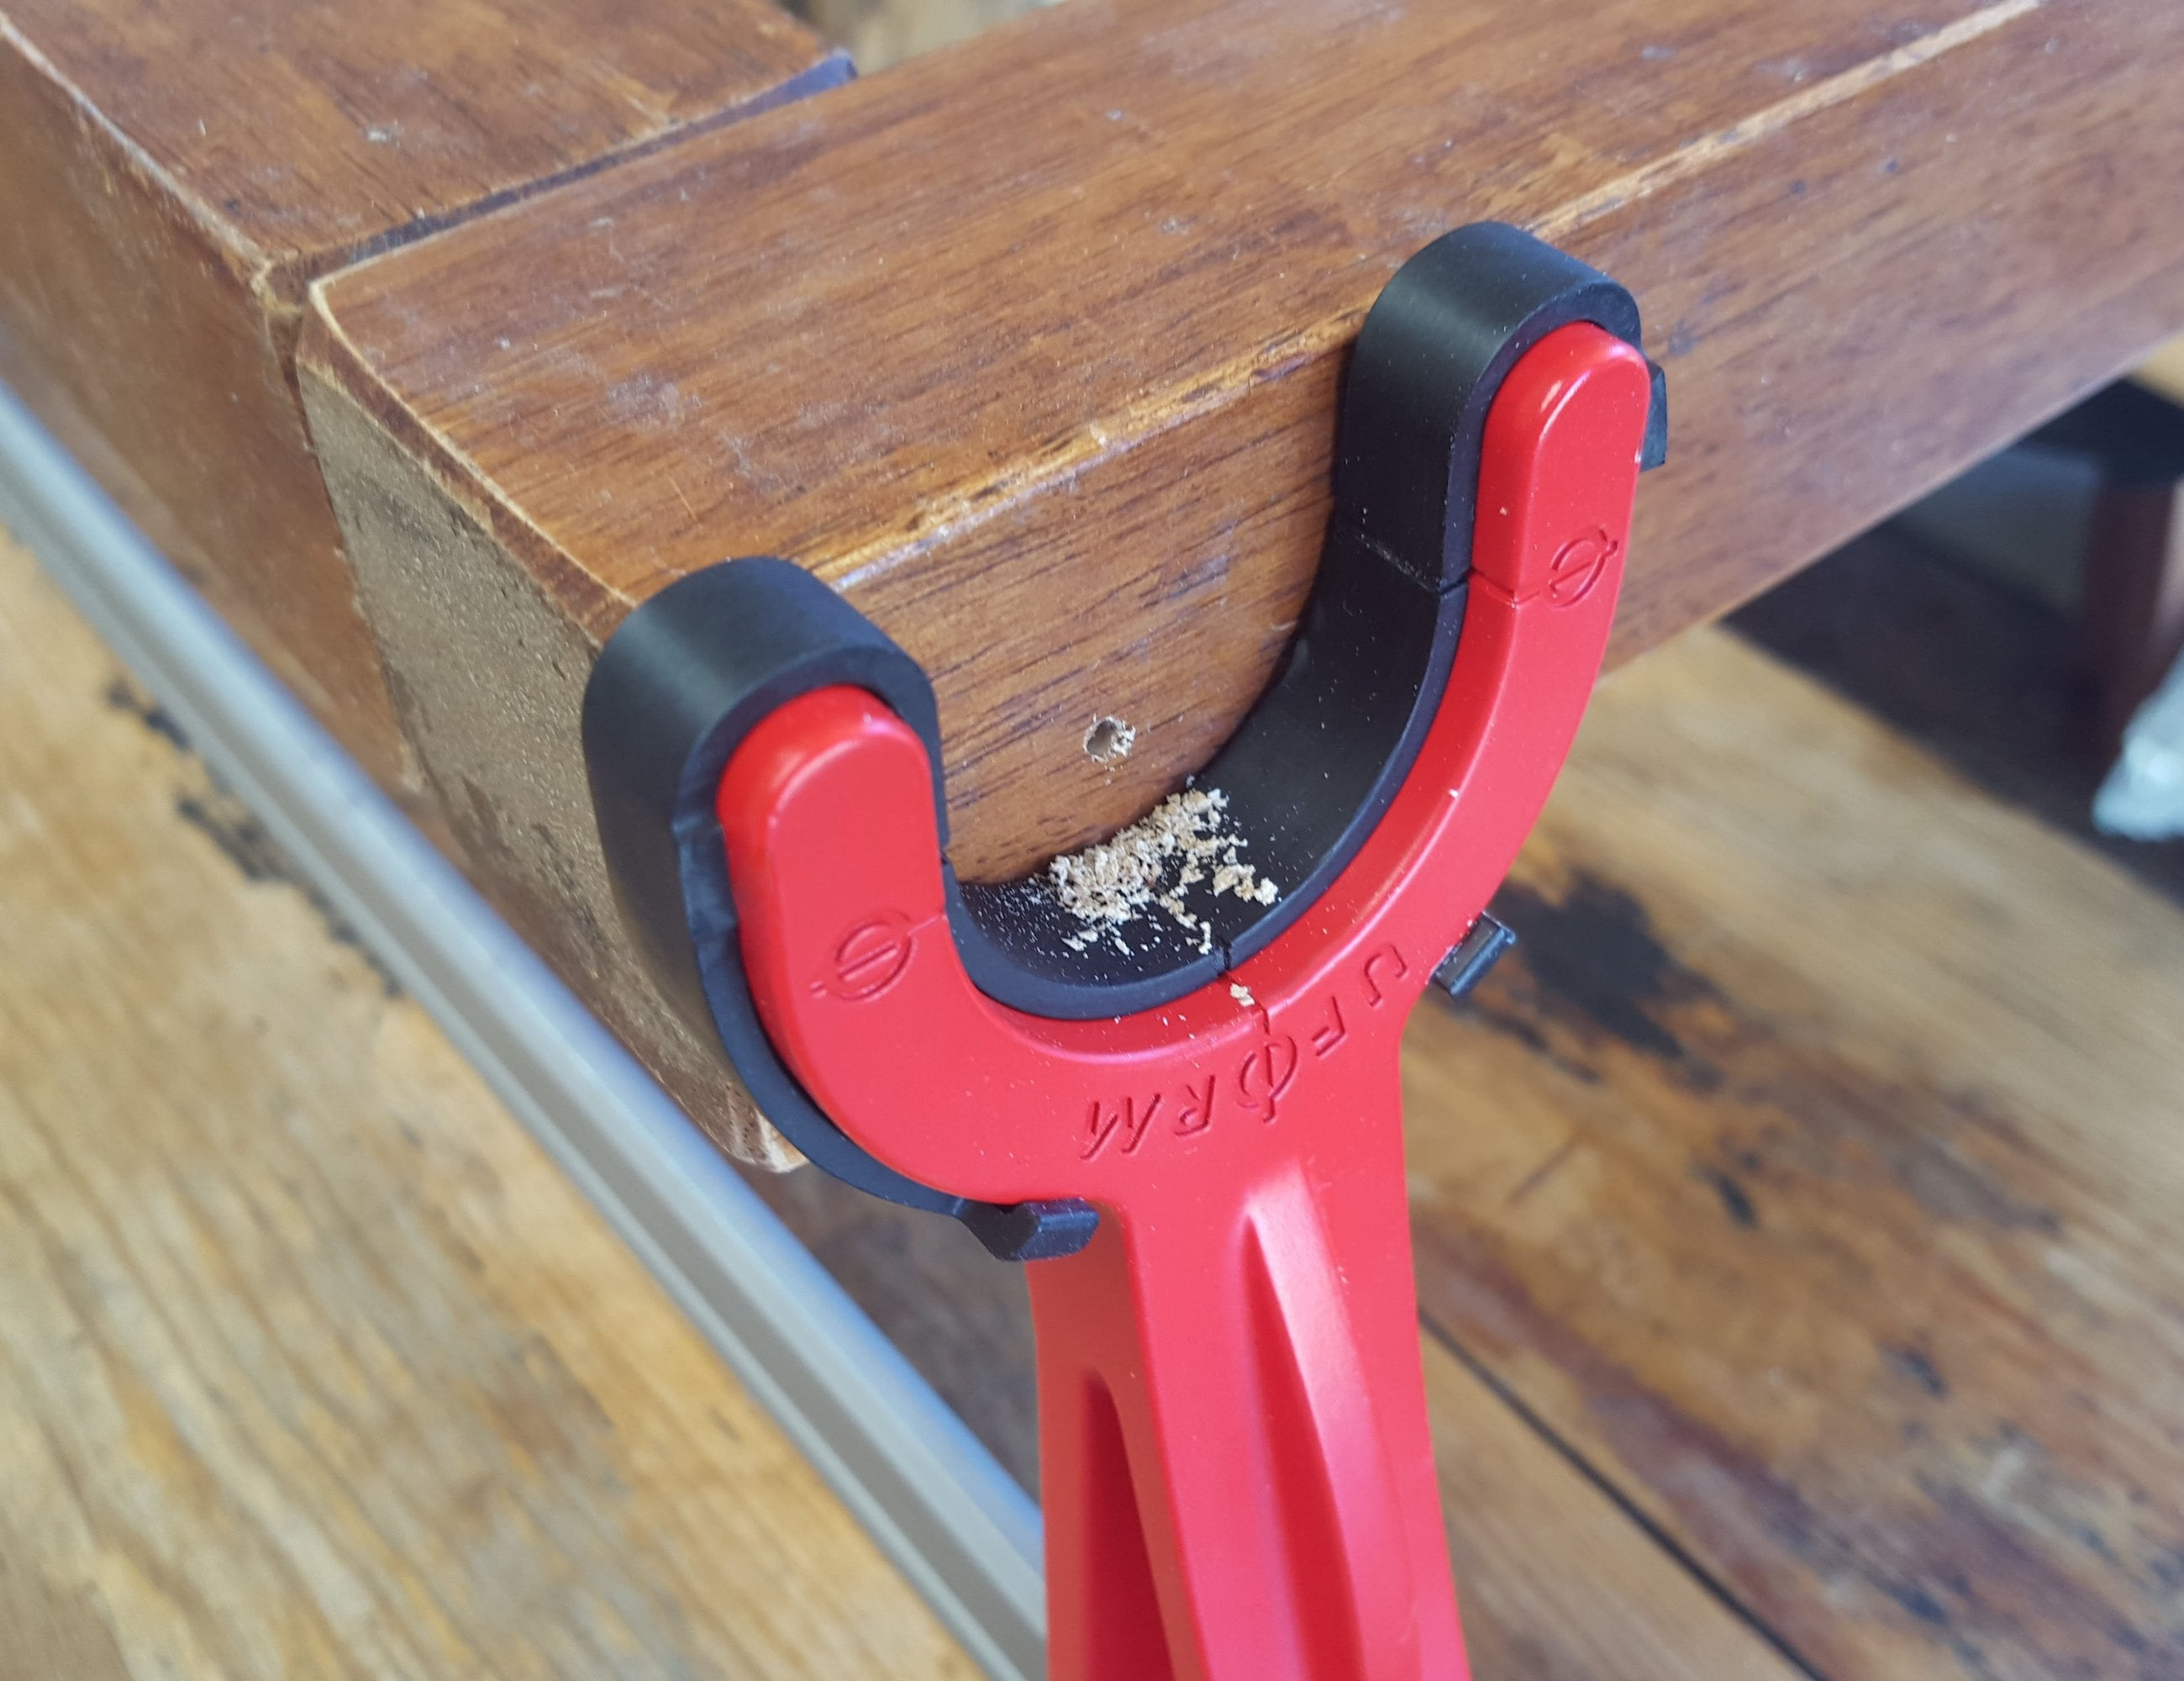 Andrew Clamp Modern Woodworker's Clamp